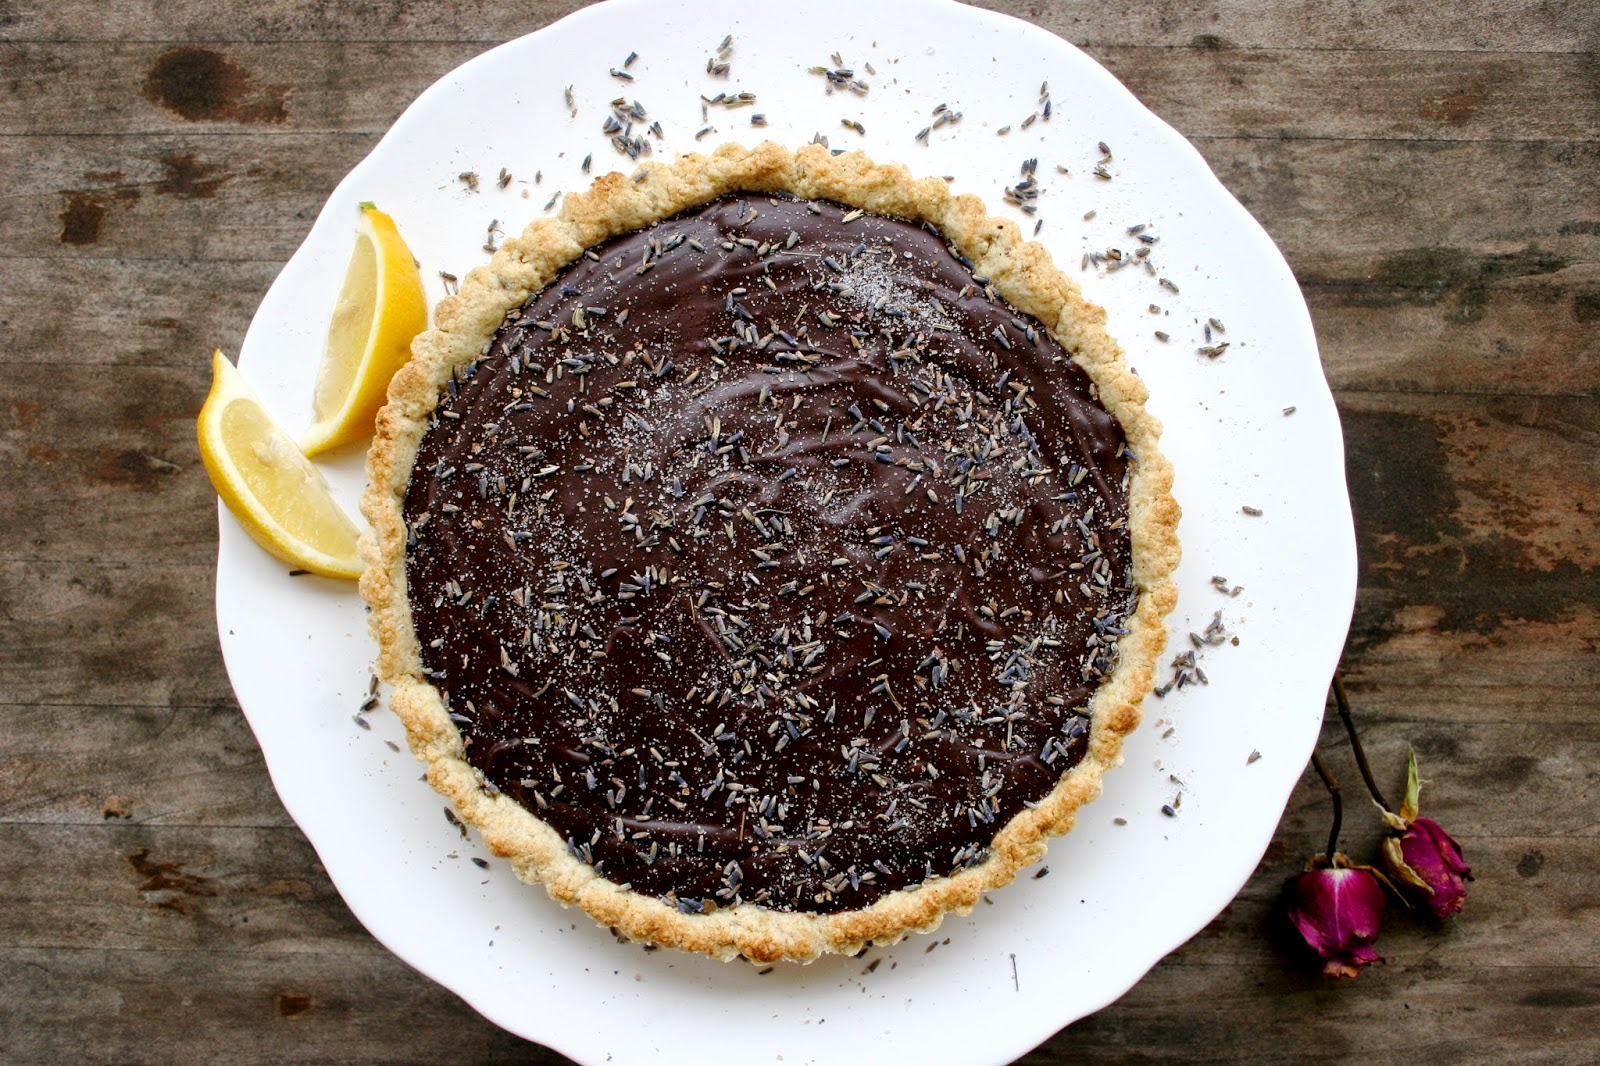 Dark Chocolate Lavender Tart with a Lemon Cardamom Crust